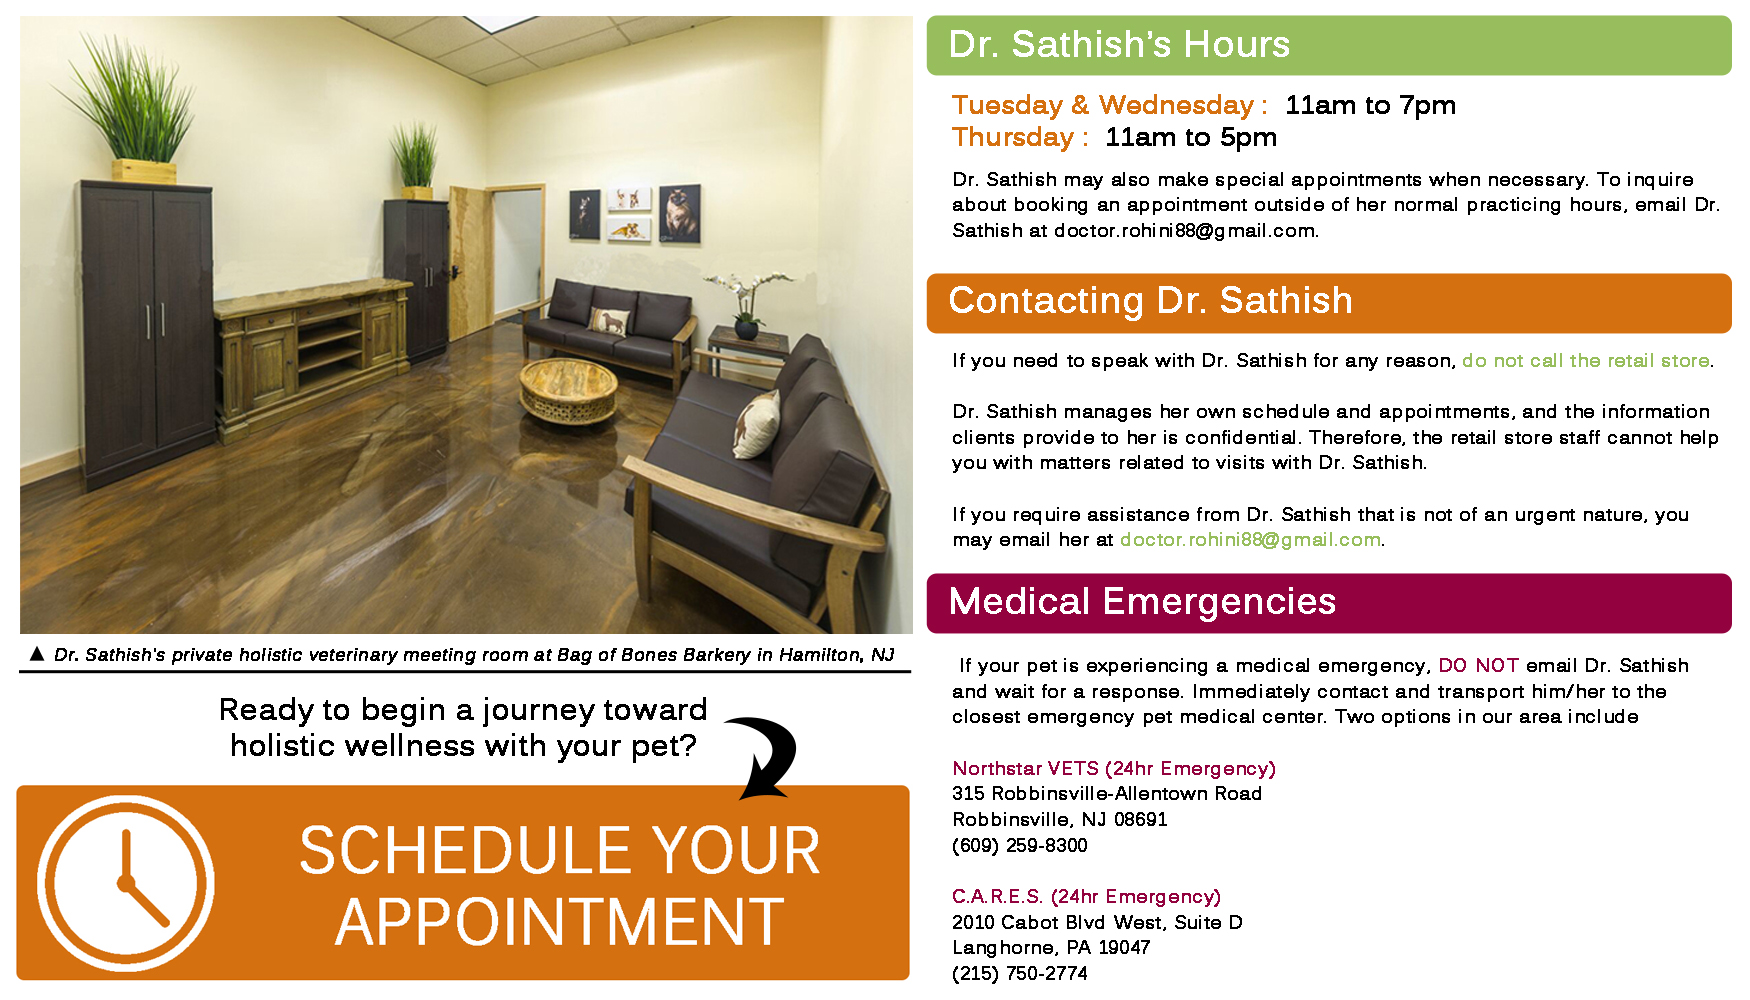 Dr. Sathish's Hours & Contact Info